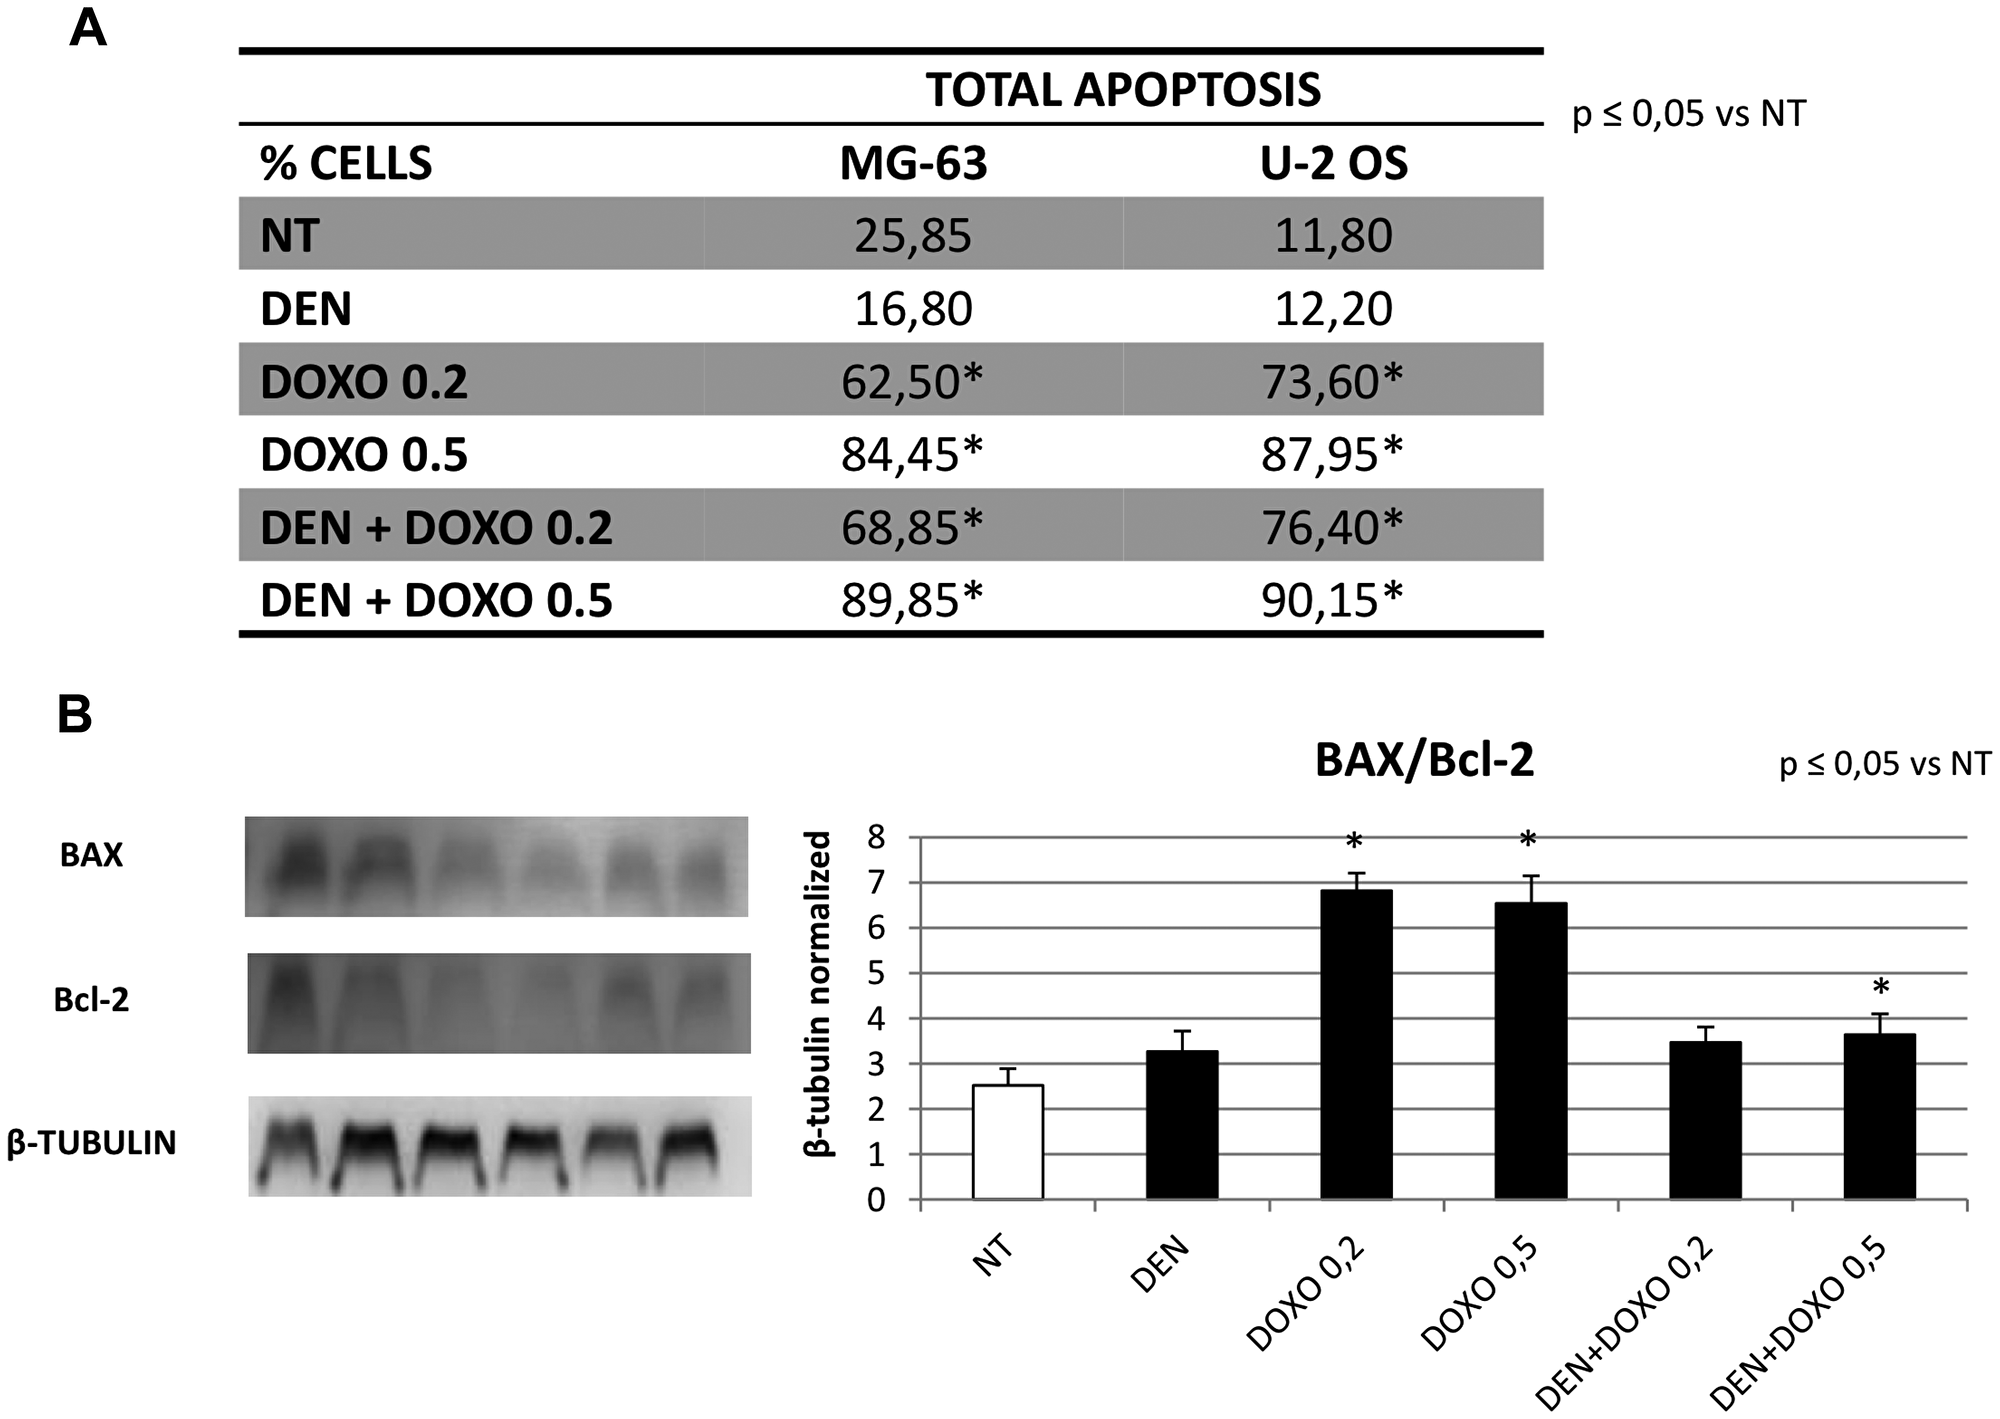 Apoptosis evaluation in OS cell lines after treatment with Den and Doxo determined by cytofluorimetric assay and by Western blot (BAX/Bcl-2 ratio).